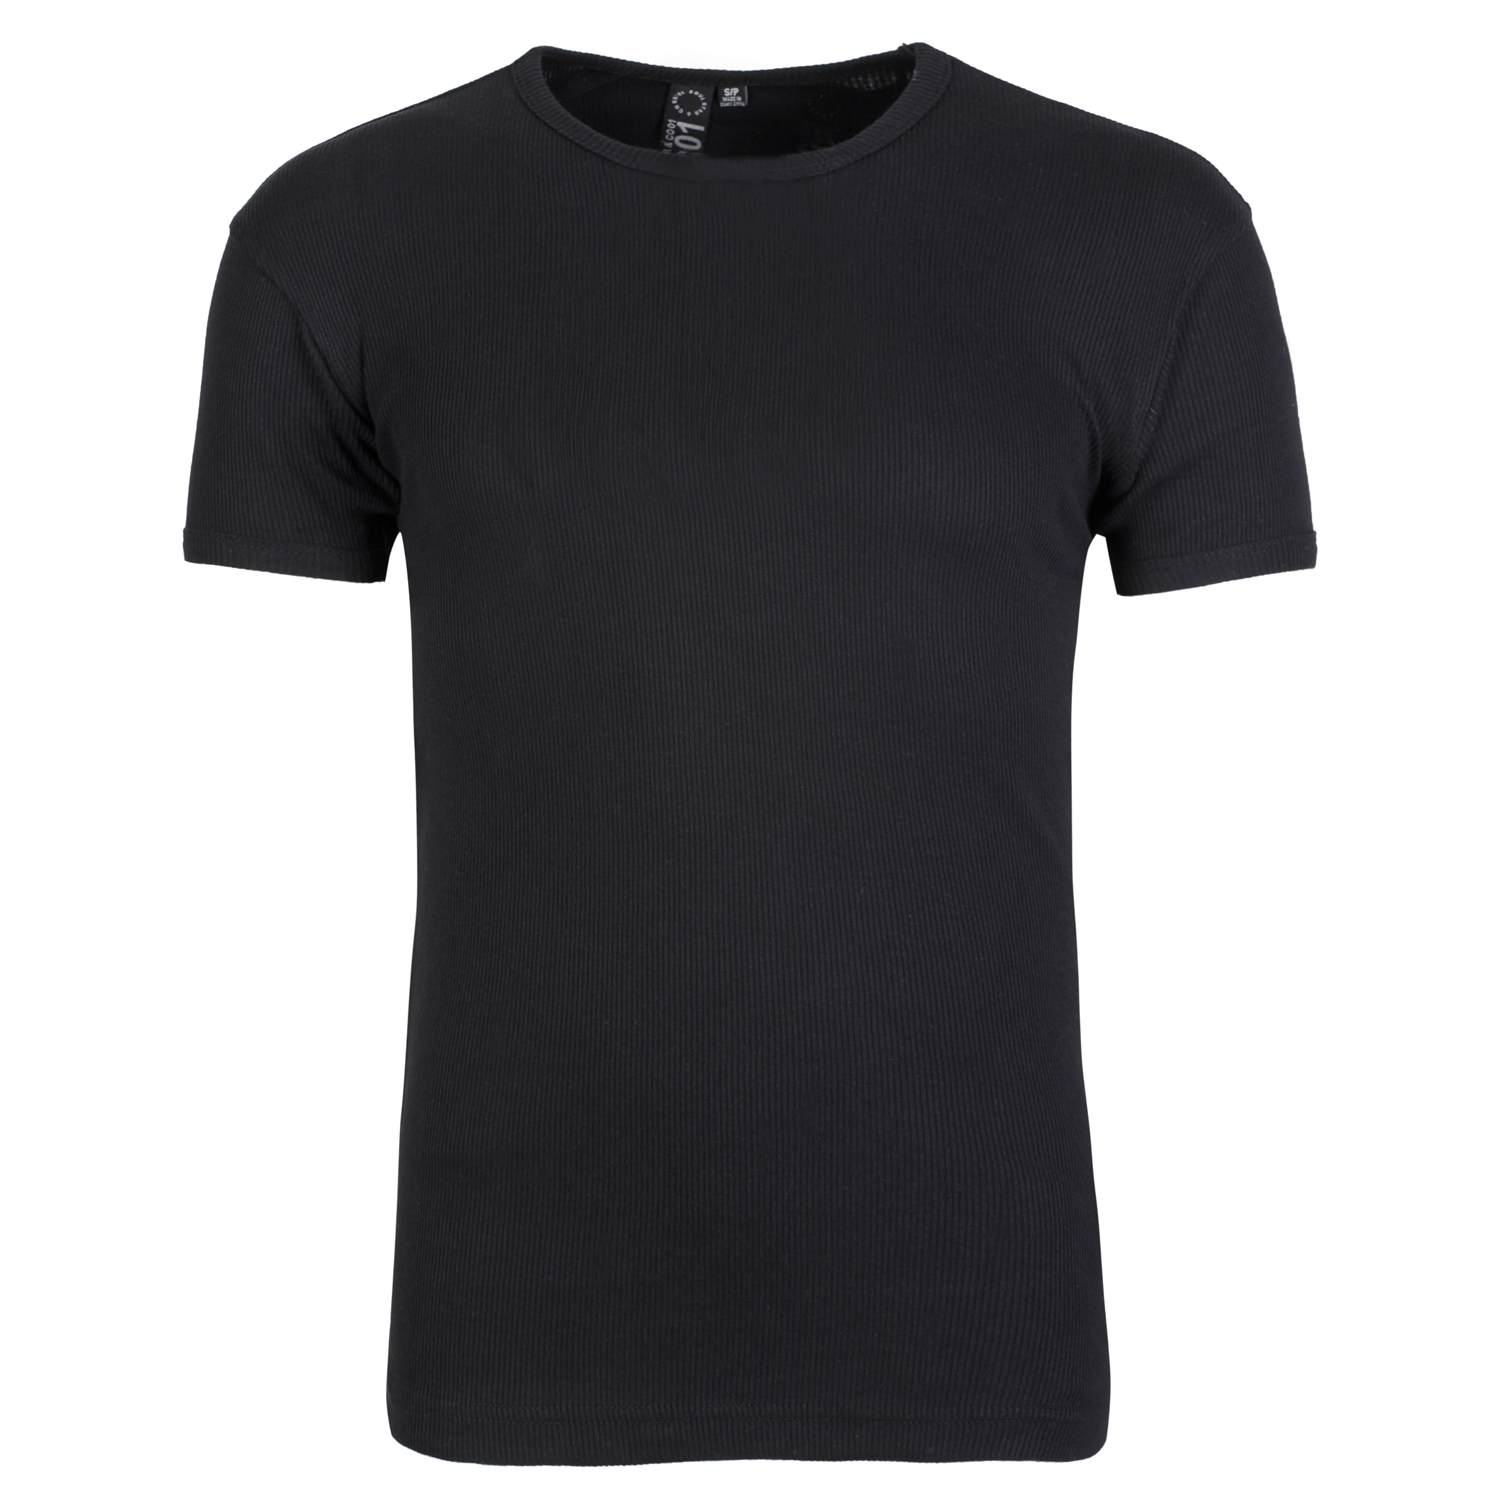 Soul star mens ribbed crew neck t shirt short sleeve tee for Mens ribbed t shirts